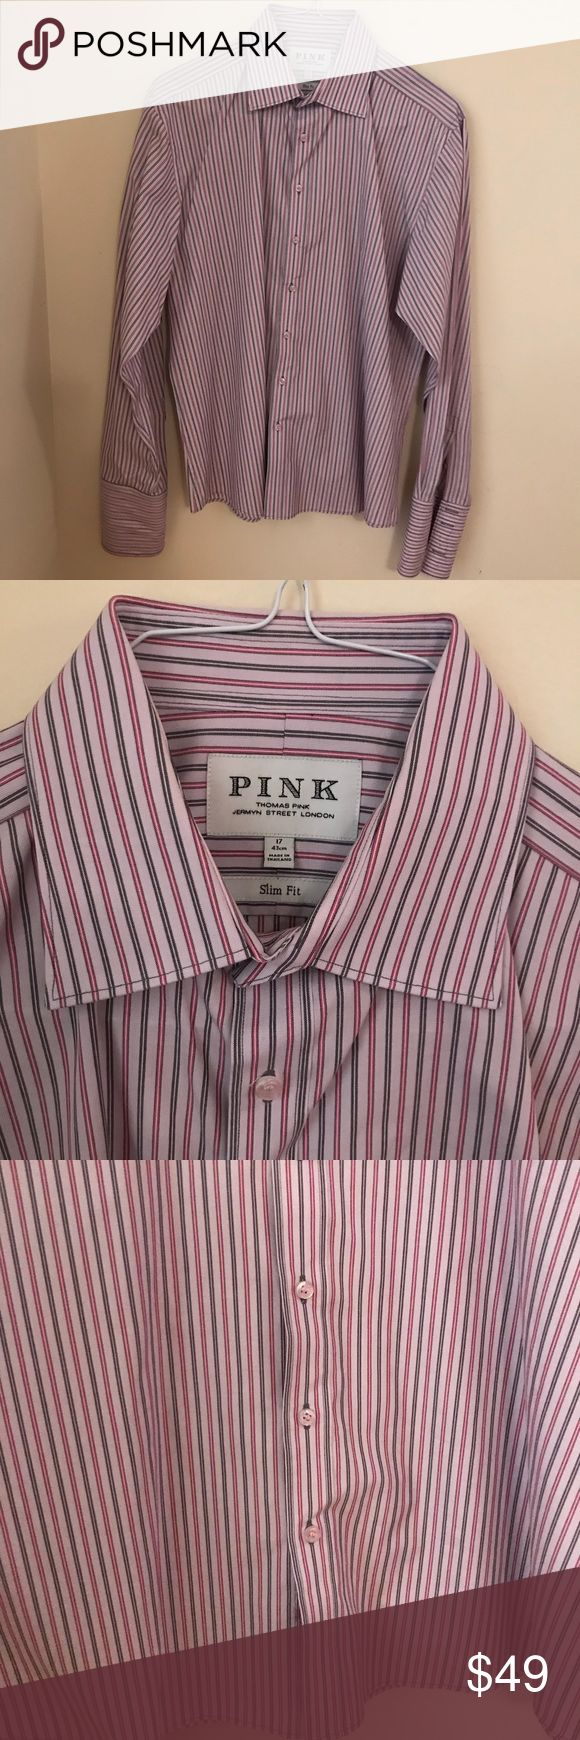 Pink Men's Shirt Barely used in great condition, size 17, slim fit. Multi straps light pink and light purple and gray pink thomas pink Shirts Dress Shirts